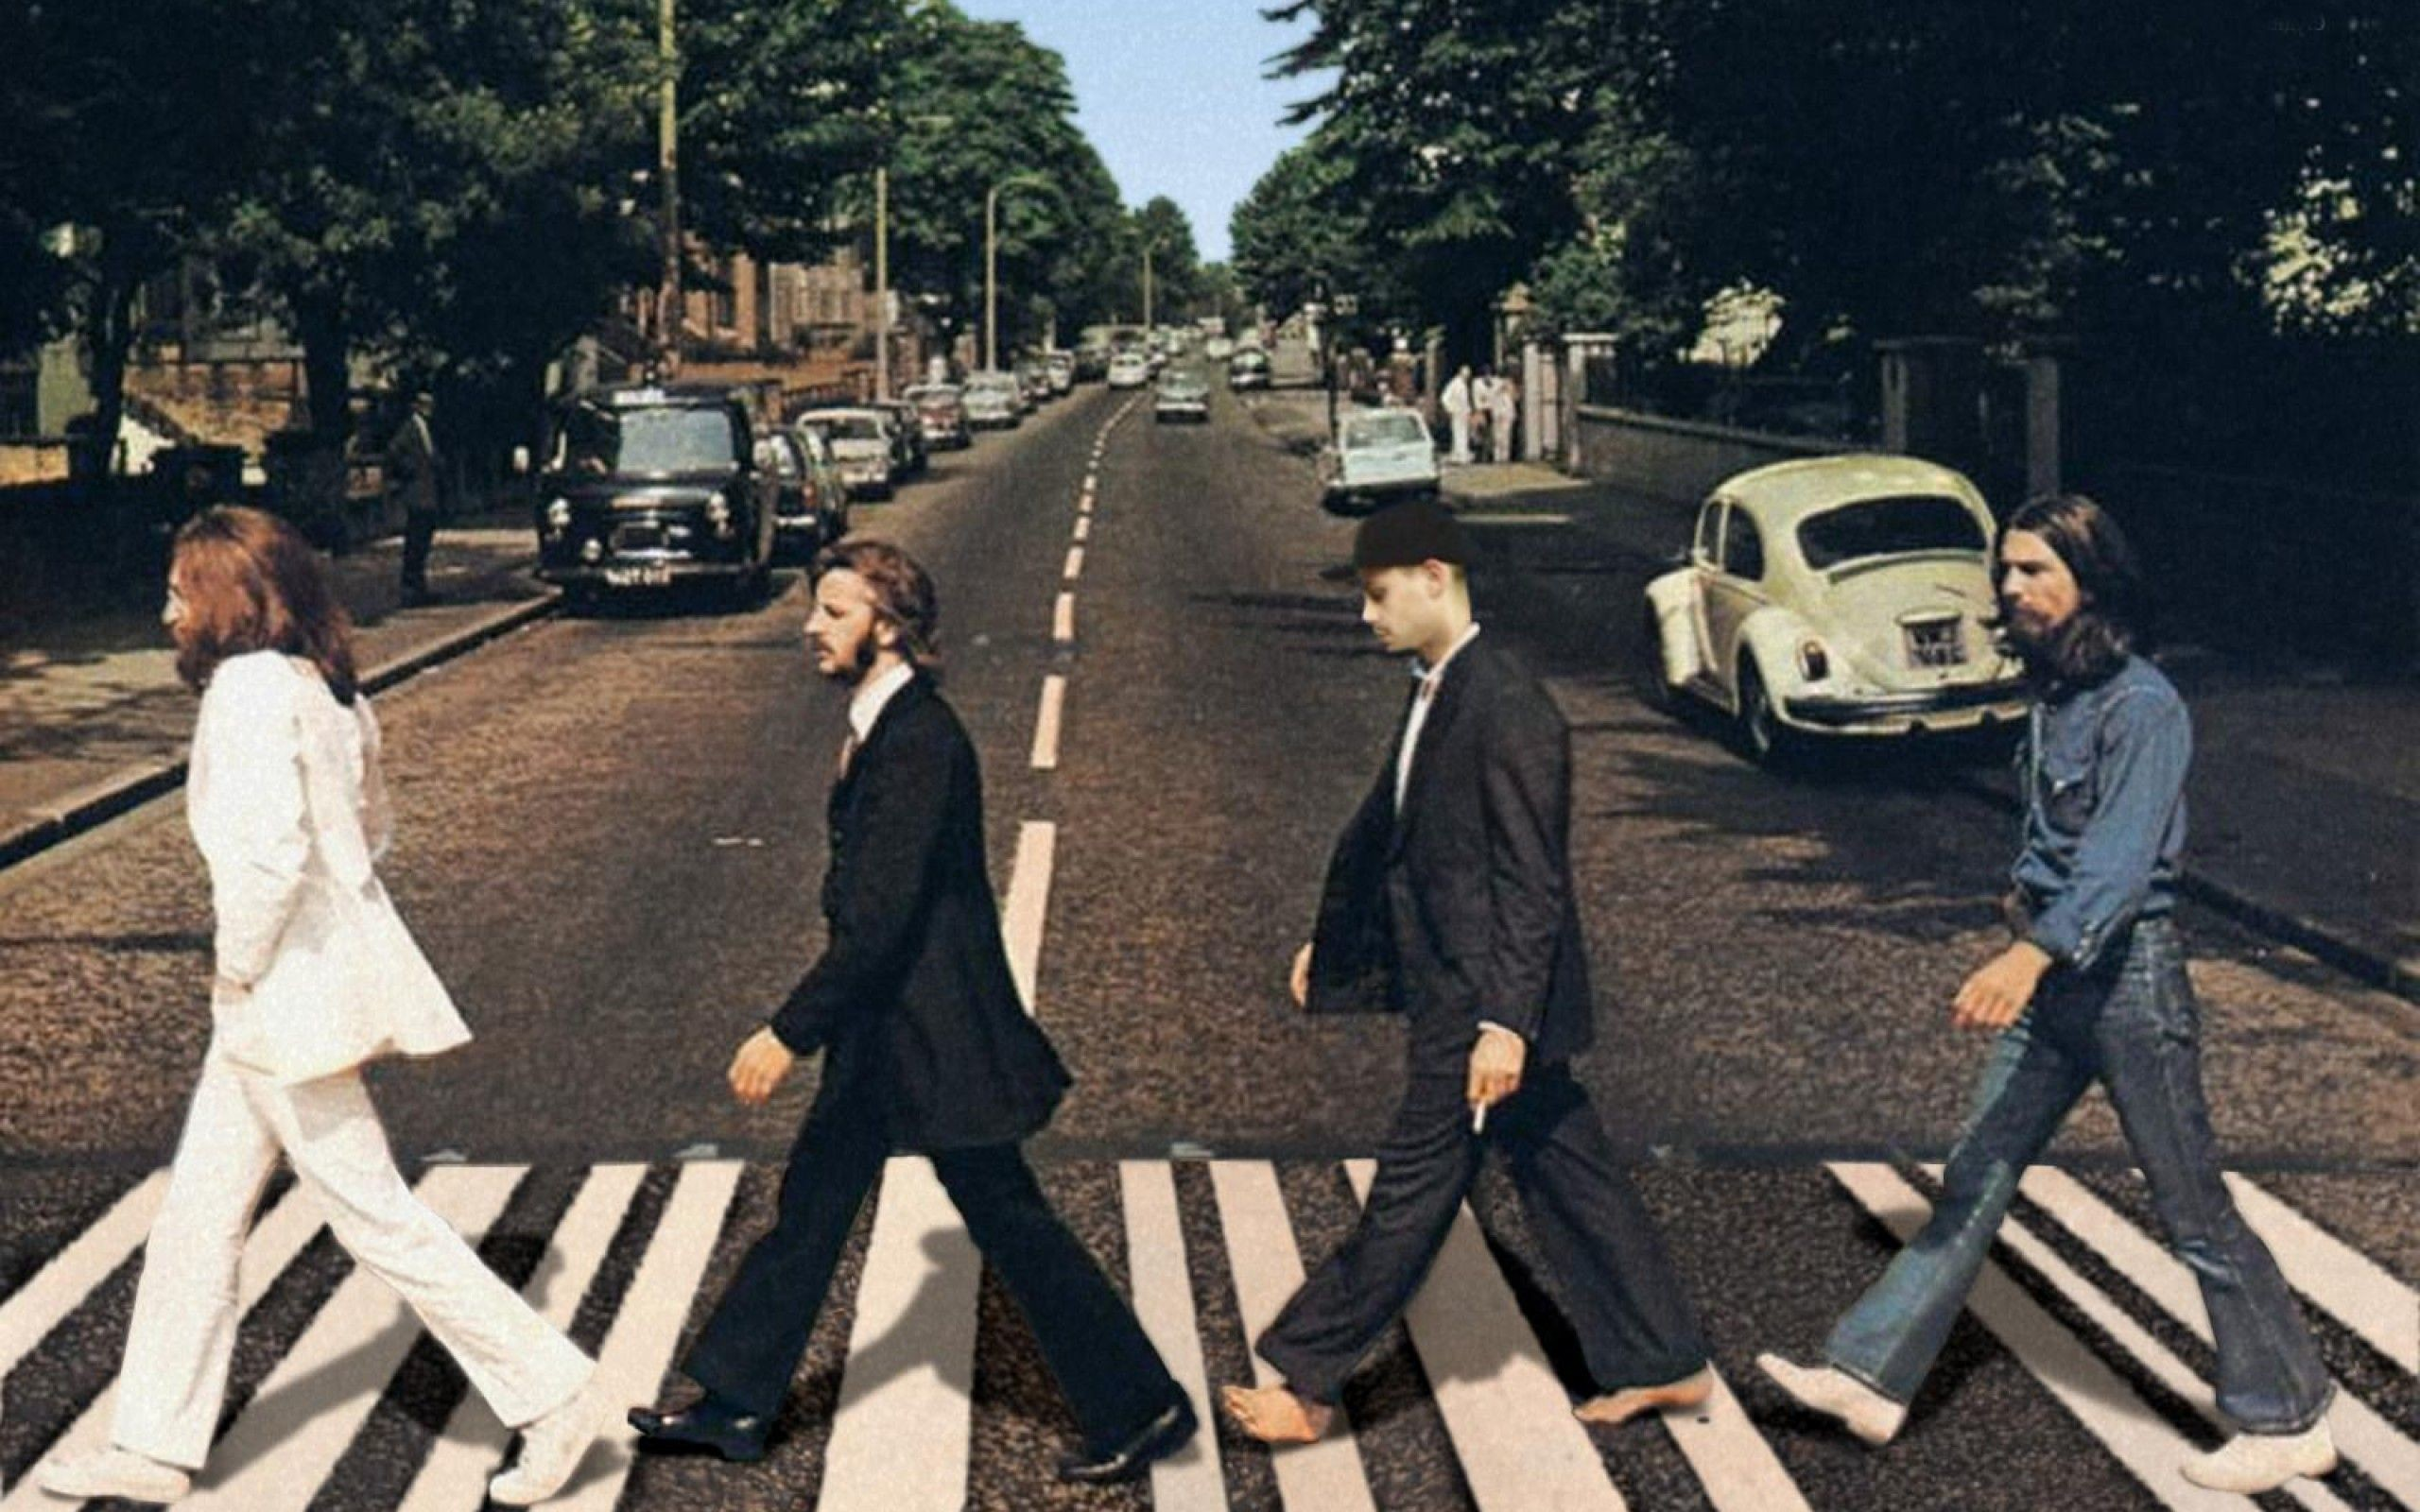 Abbey Road Wallpaper (60+ images)